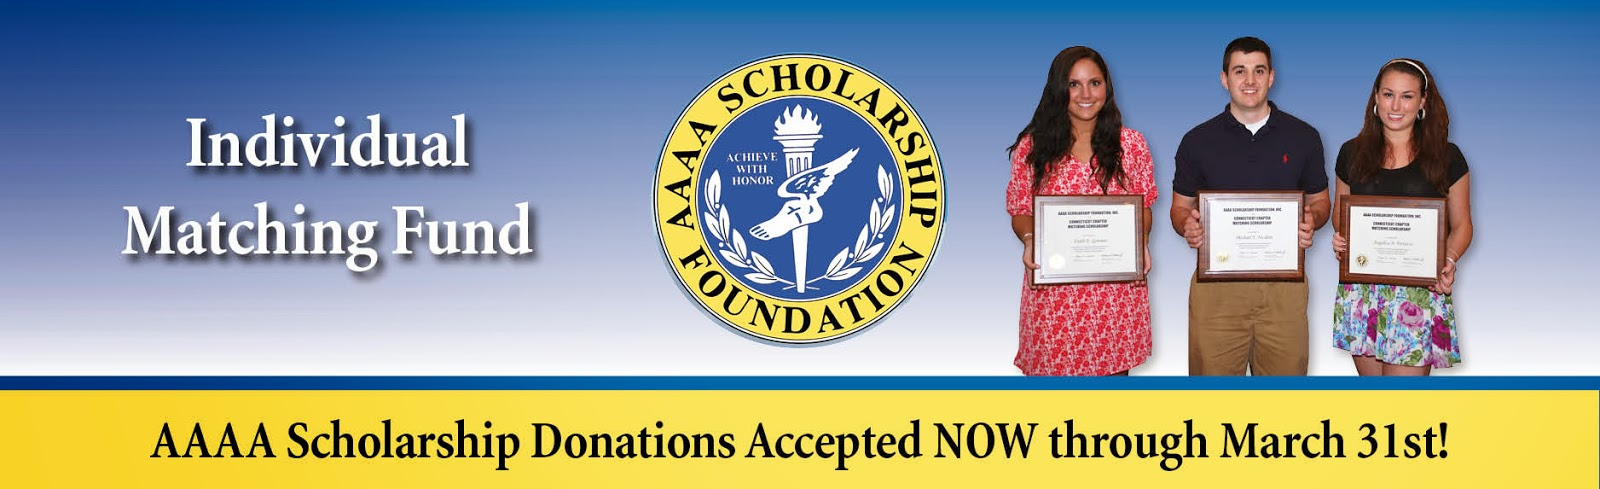 http://www.quad-a.org/index.php/112-support/682-individual-matching-fund-aaaa-scholarship-donations